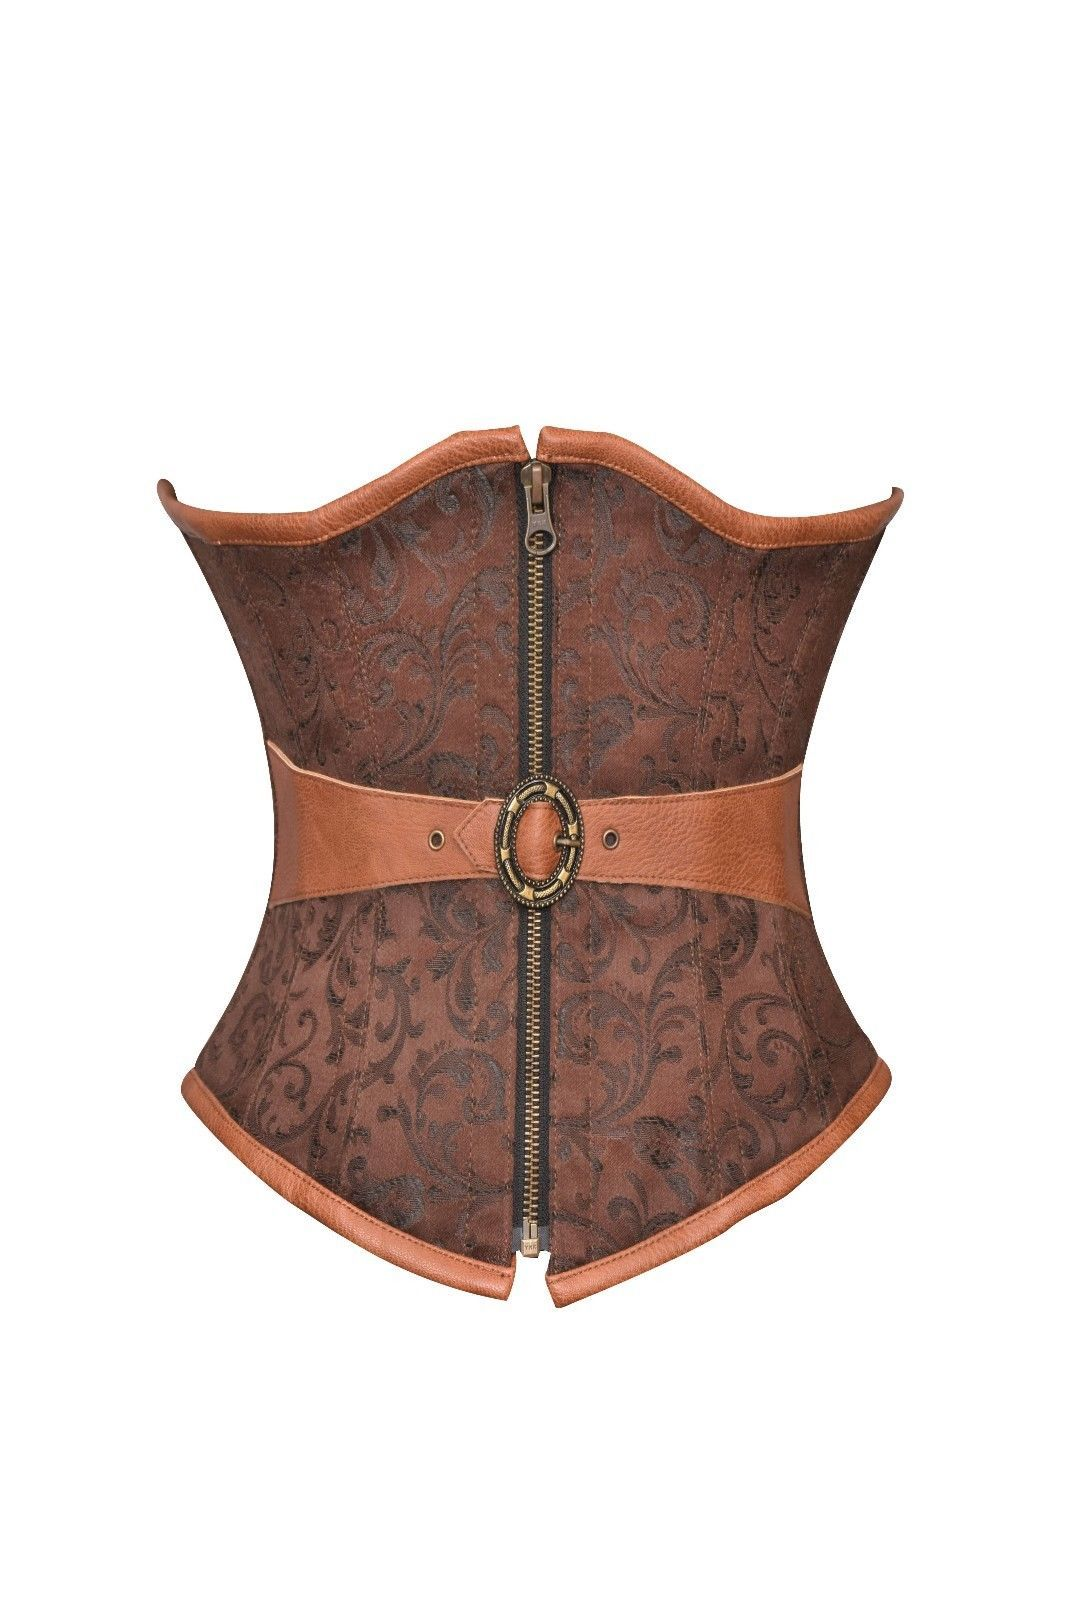 Brown Brocade & Leather Belt Steampunk Waist Training Bustier Underbust Corset